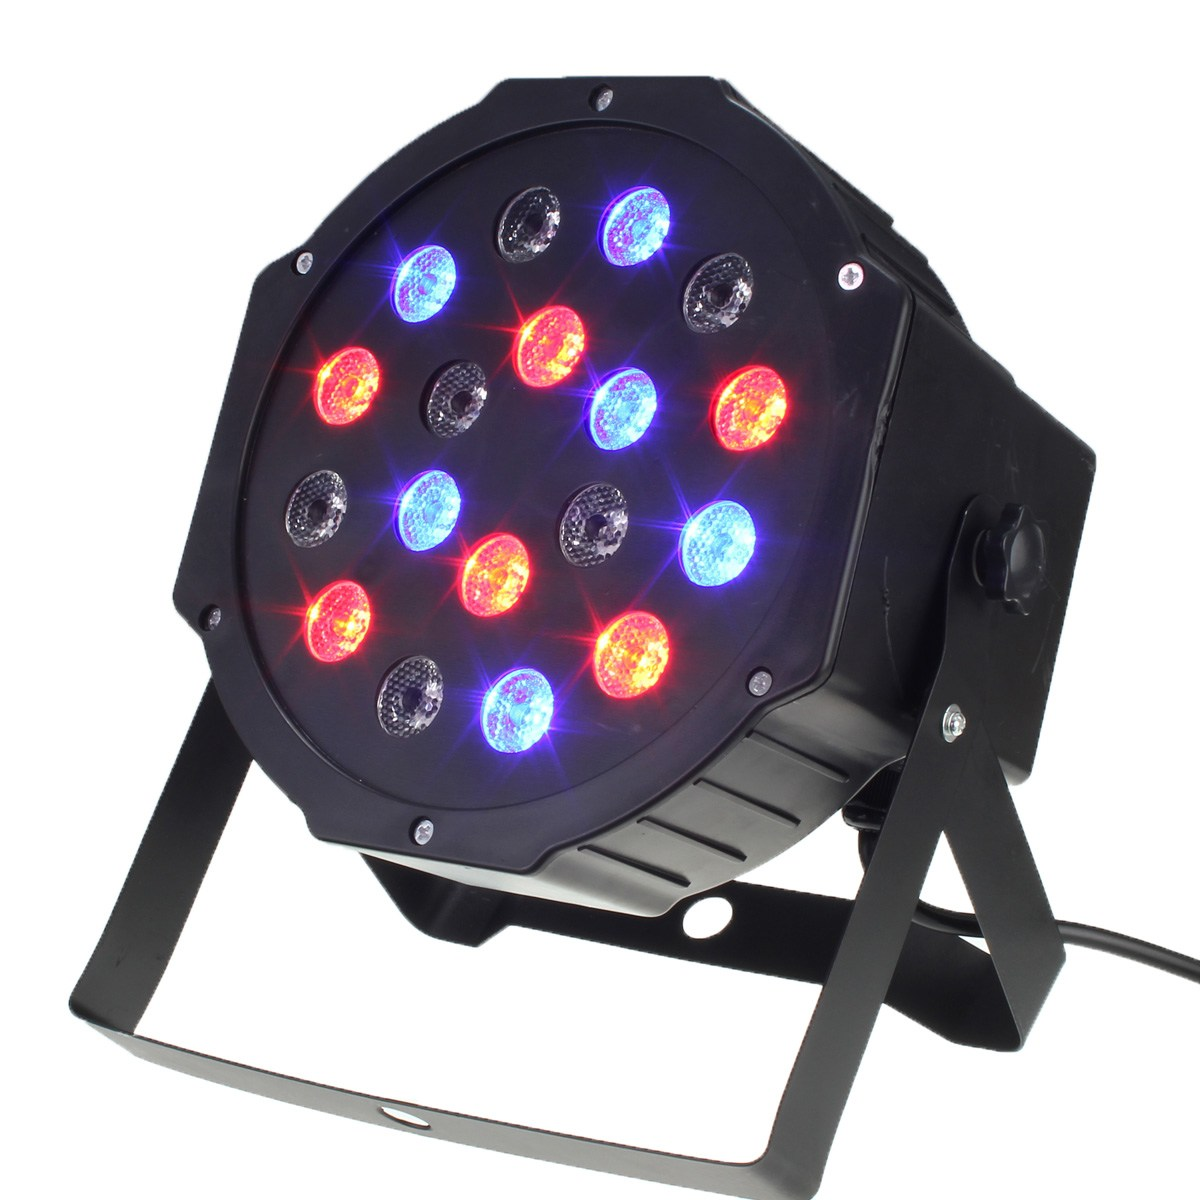 Auto Sound Laser Projector 18W RGB LED Stage Light Night Lamp DMX-512 PAR Party Disco KTV DJ Garden Stage Lighting Effect fumat remote control laser stage lighting sound control disco strobe light ktv home party dj led projector light dmx stage light